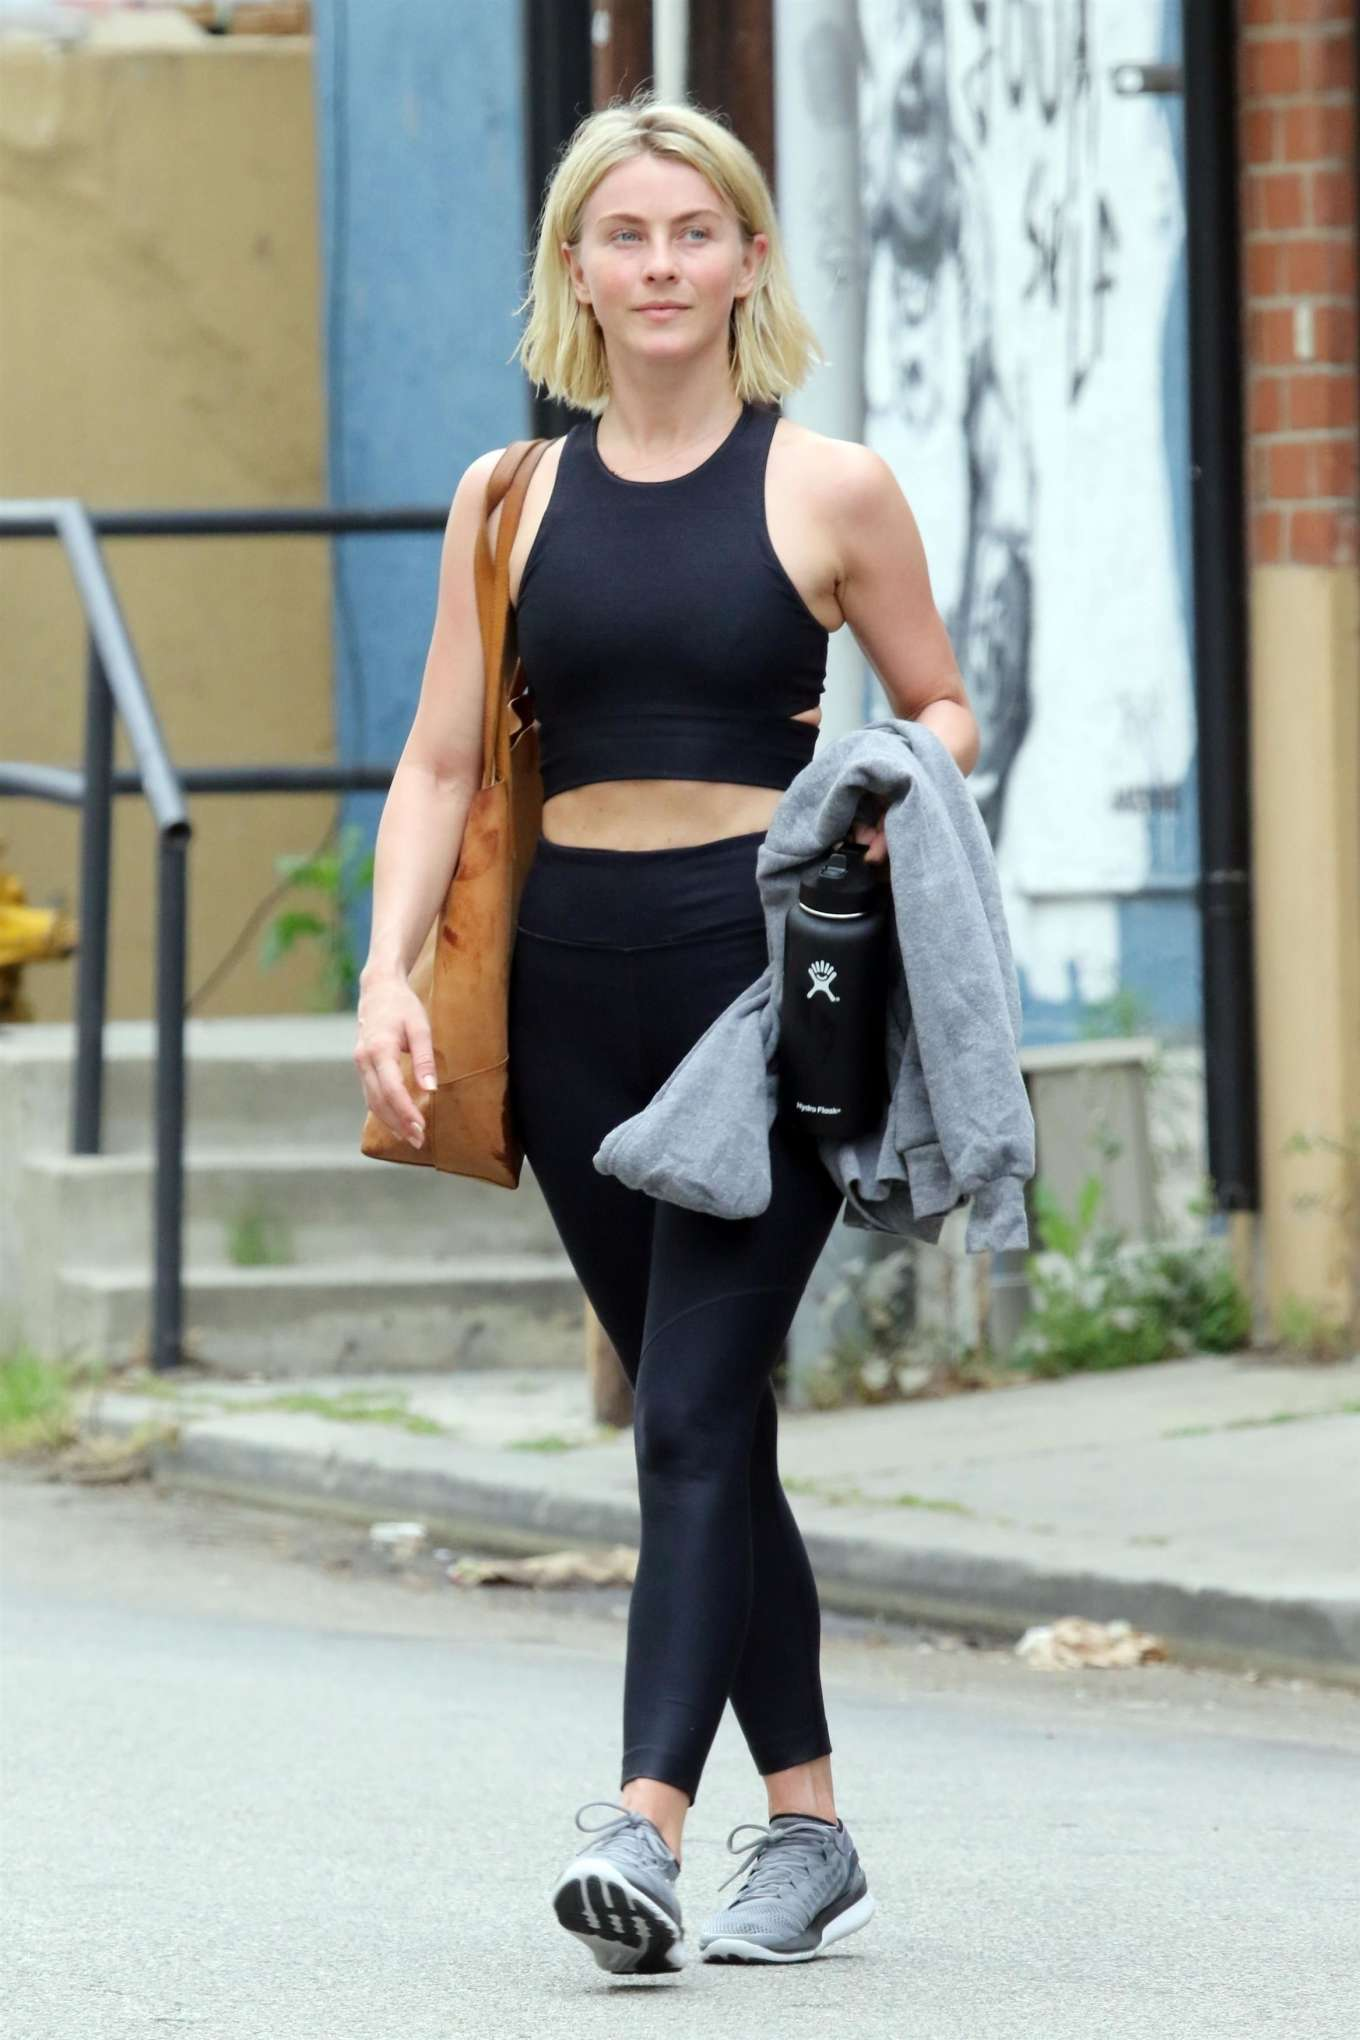 Julianne Hough 2019 : Julianne Hough: Leaving the gym in LA -16